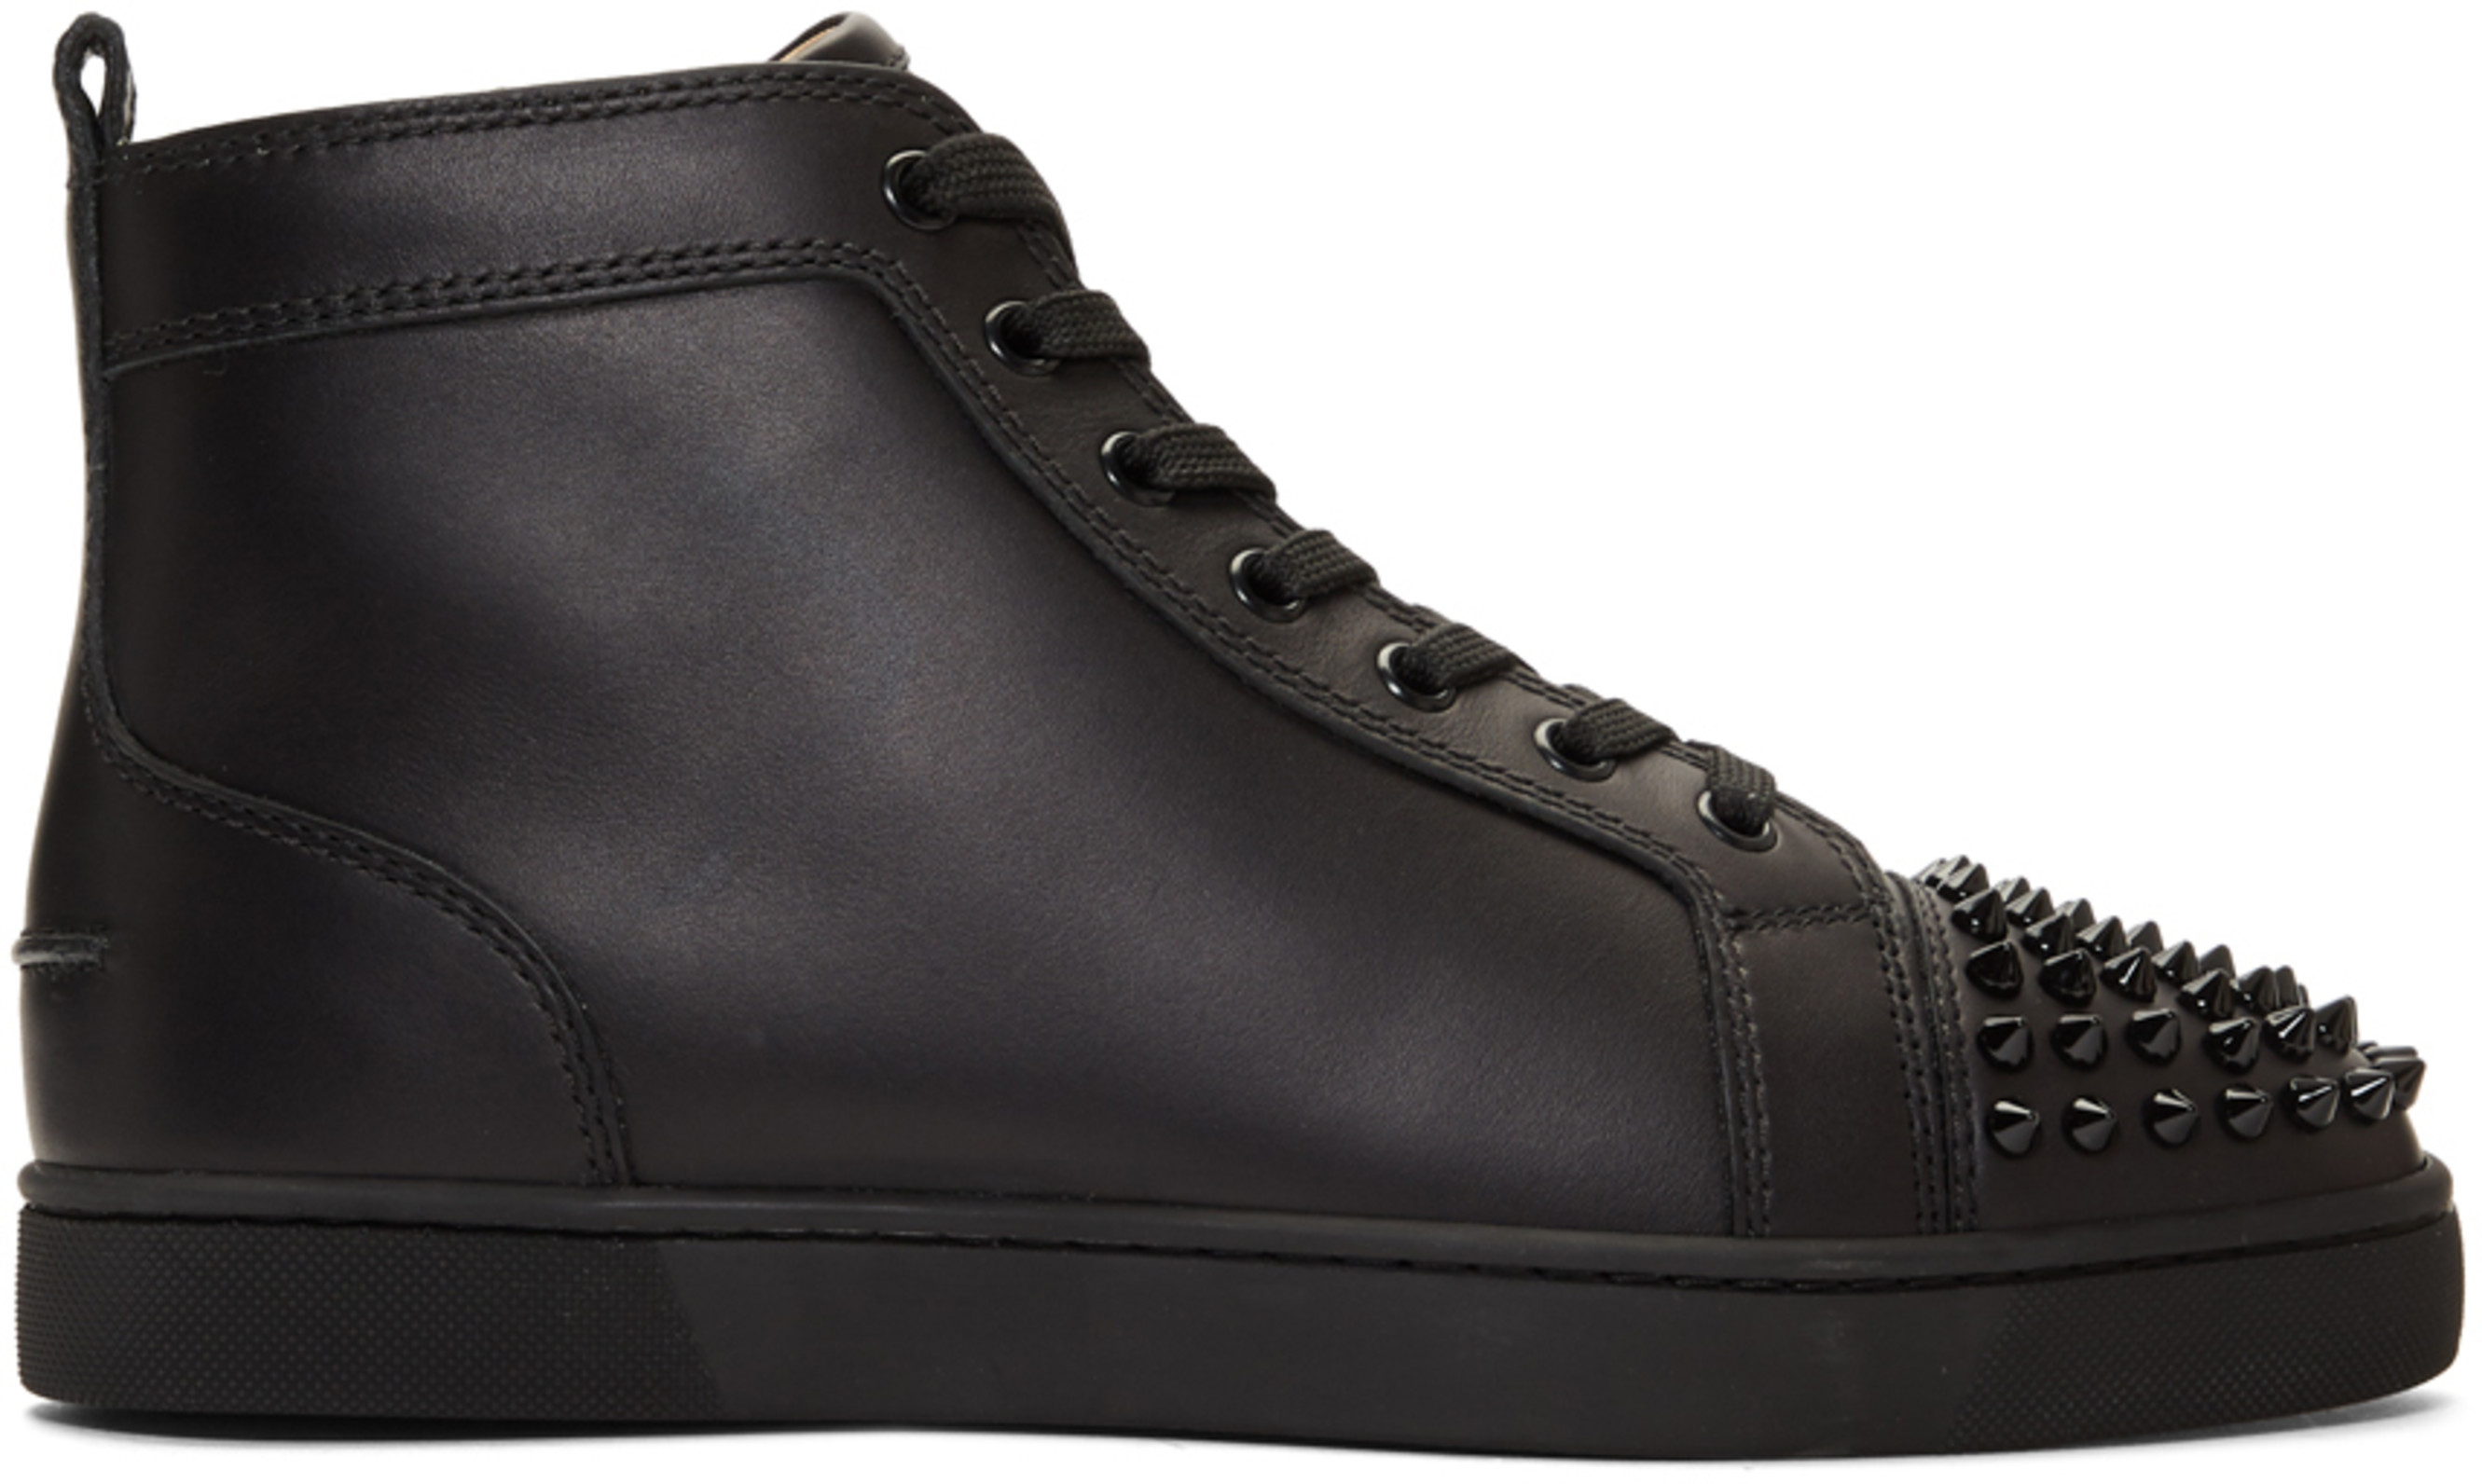 3abfe4a8a9d Black Lou Spikes High-Top Sneakers